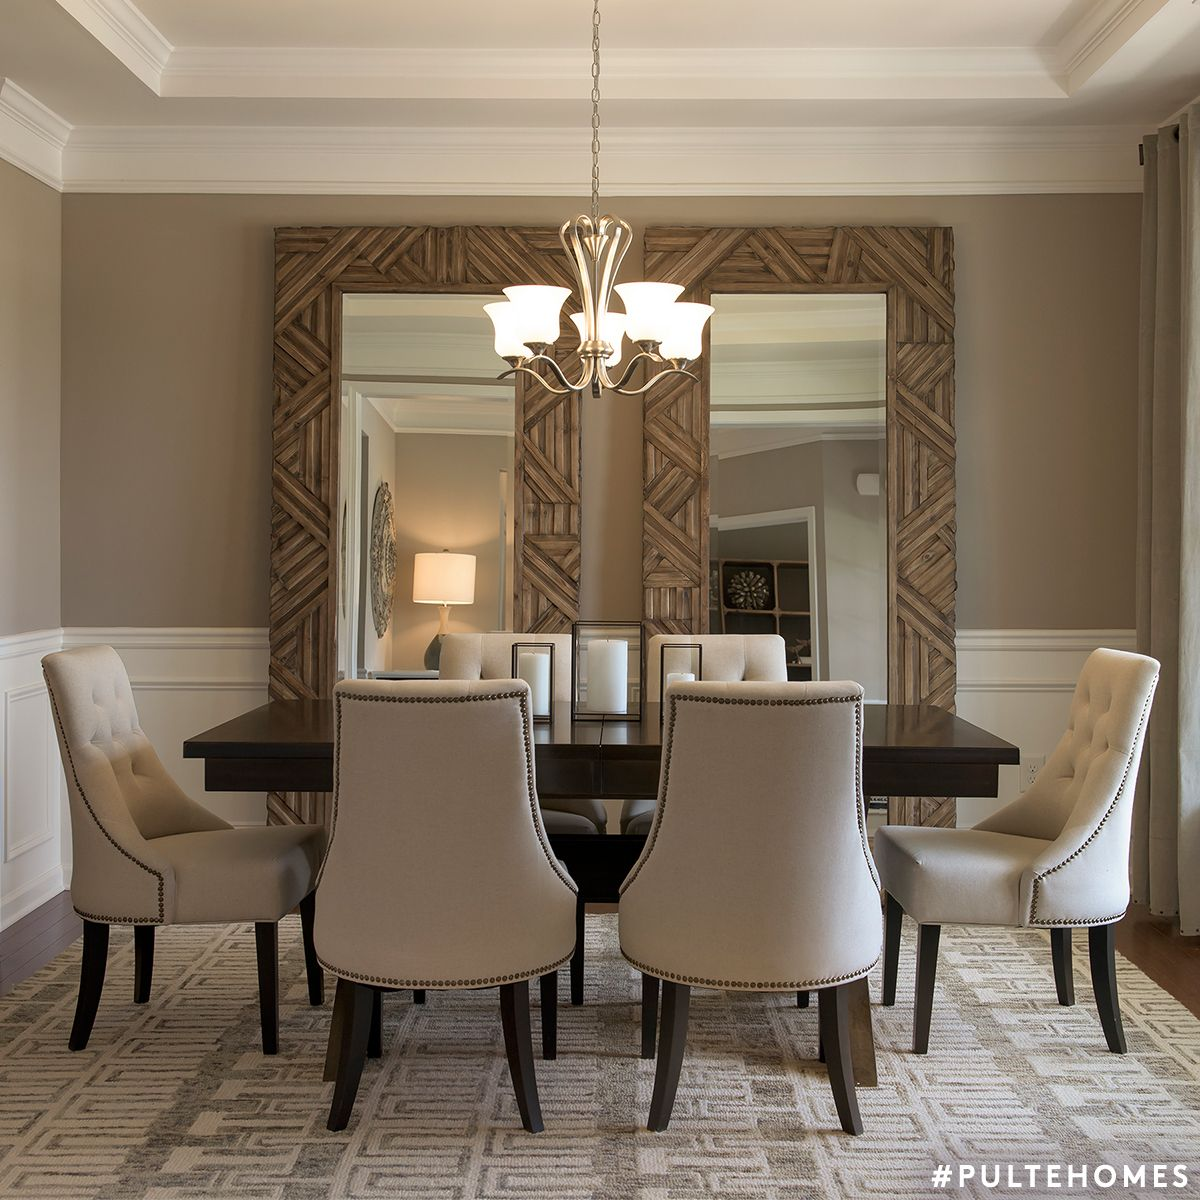 Double Mirrors Are A Great Way To Add Depth And Make Your Dining Space Appear More Grand Pulte Mirror Dining Room Elegant Dining Room Dining Room Small